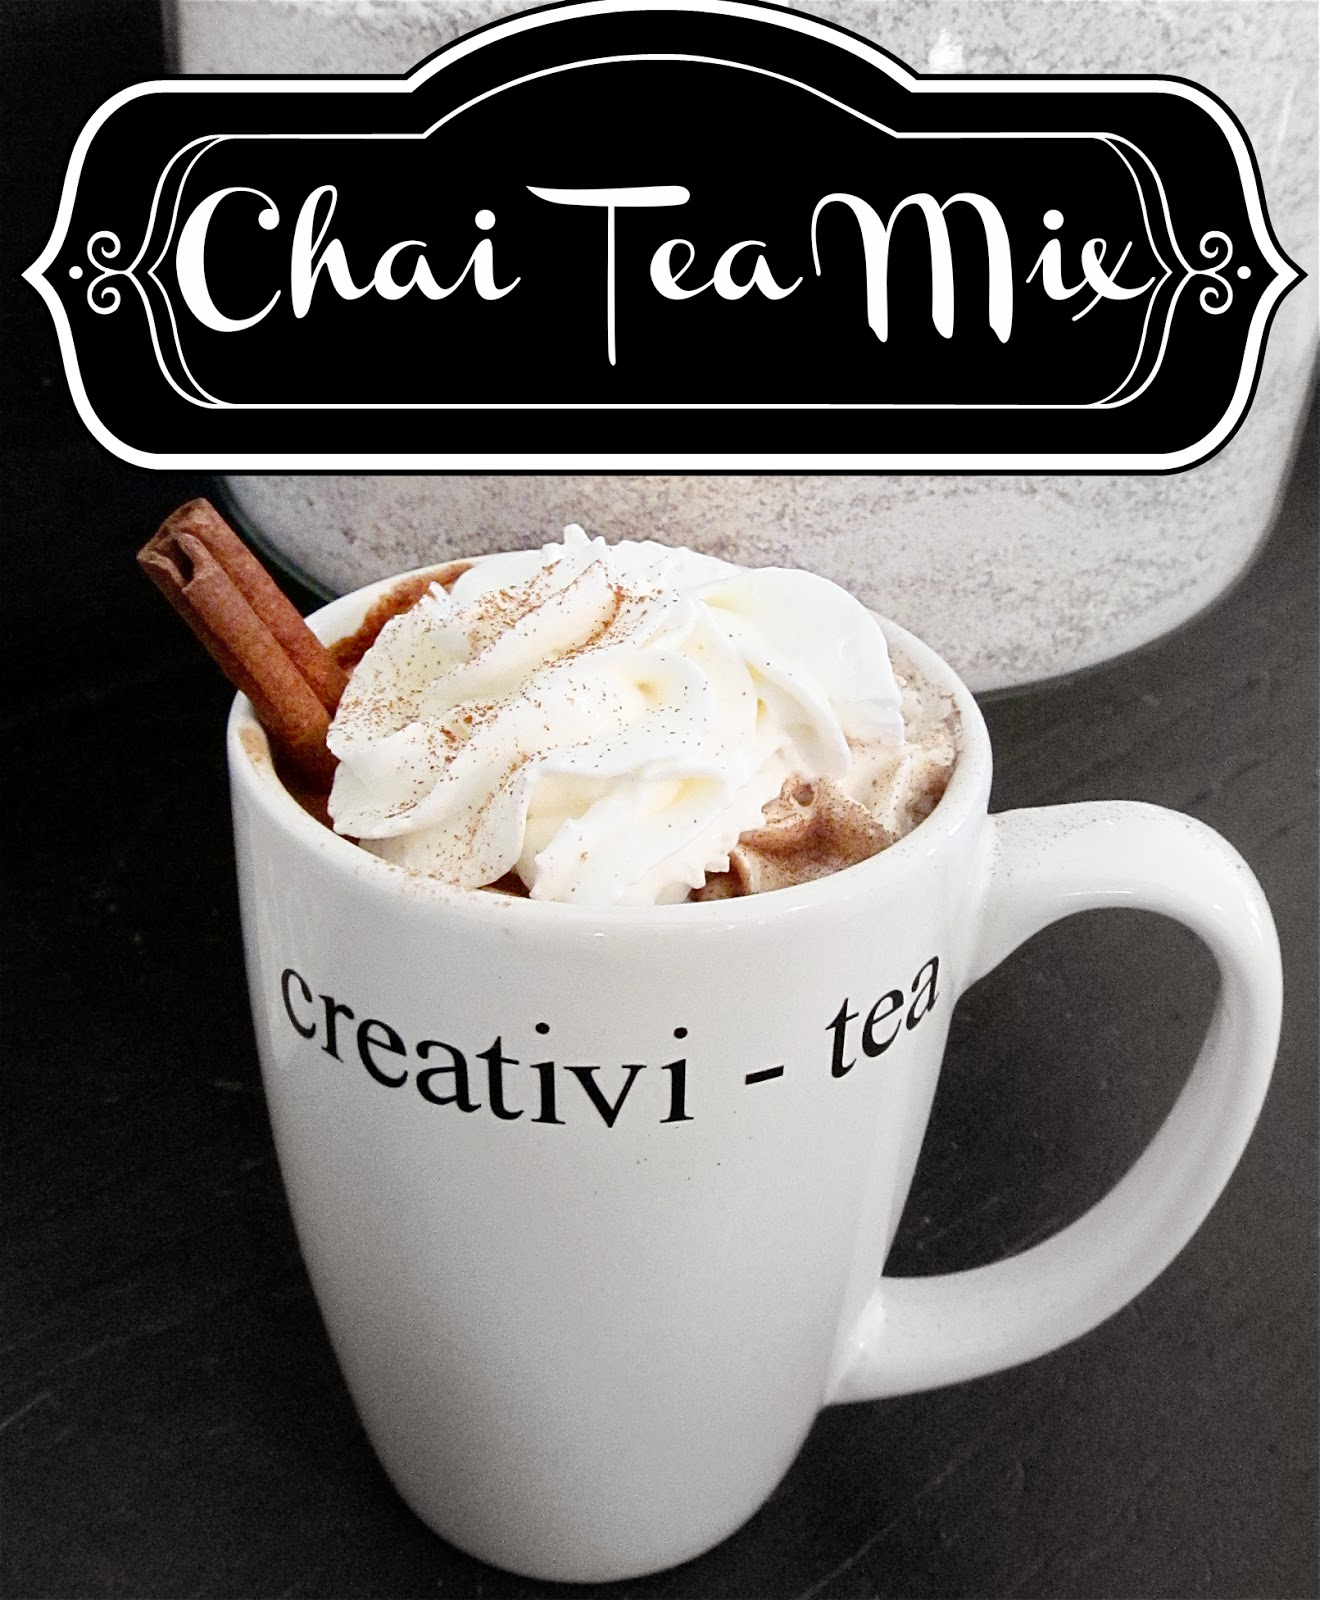 This Chai tea mix is sooooo good! My first sip was - WOW! I can't ...